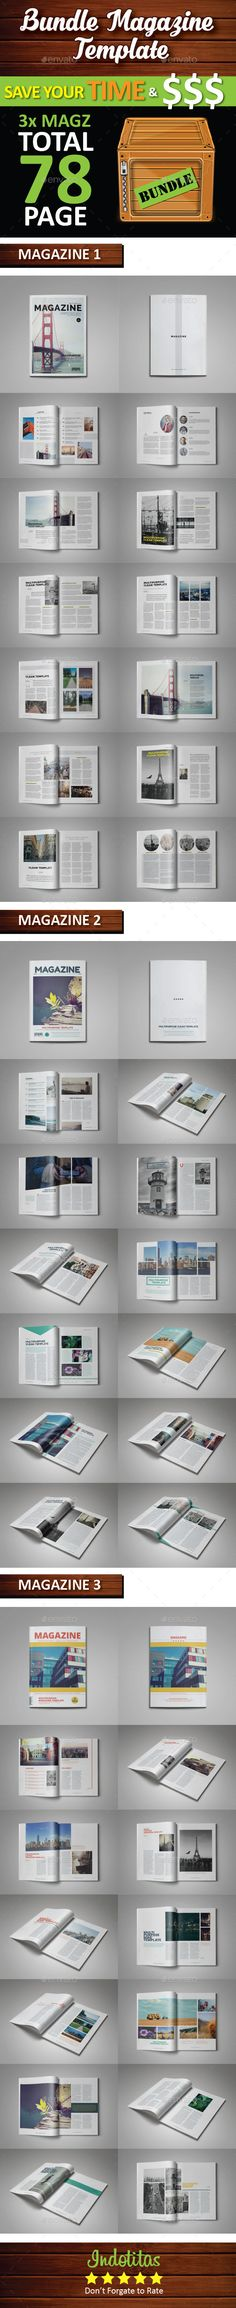 Professional InDesign Bundle magazine template that can be used for any type of industry. This item total 78 page, fully editable